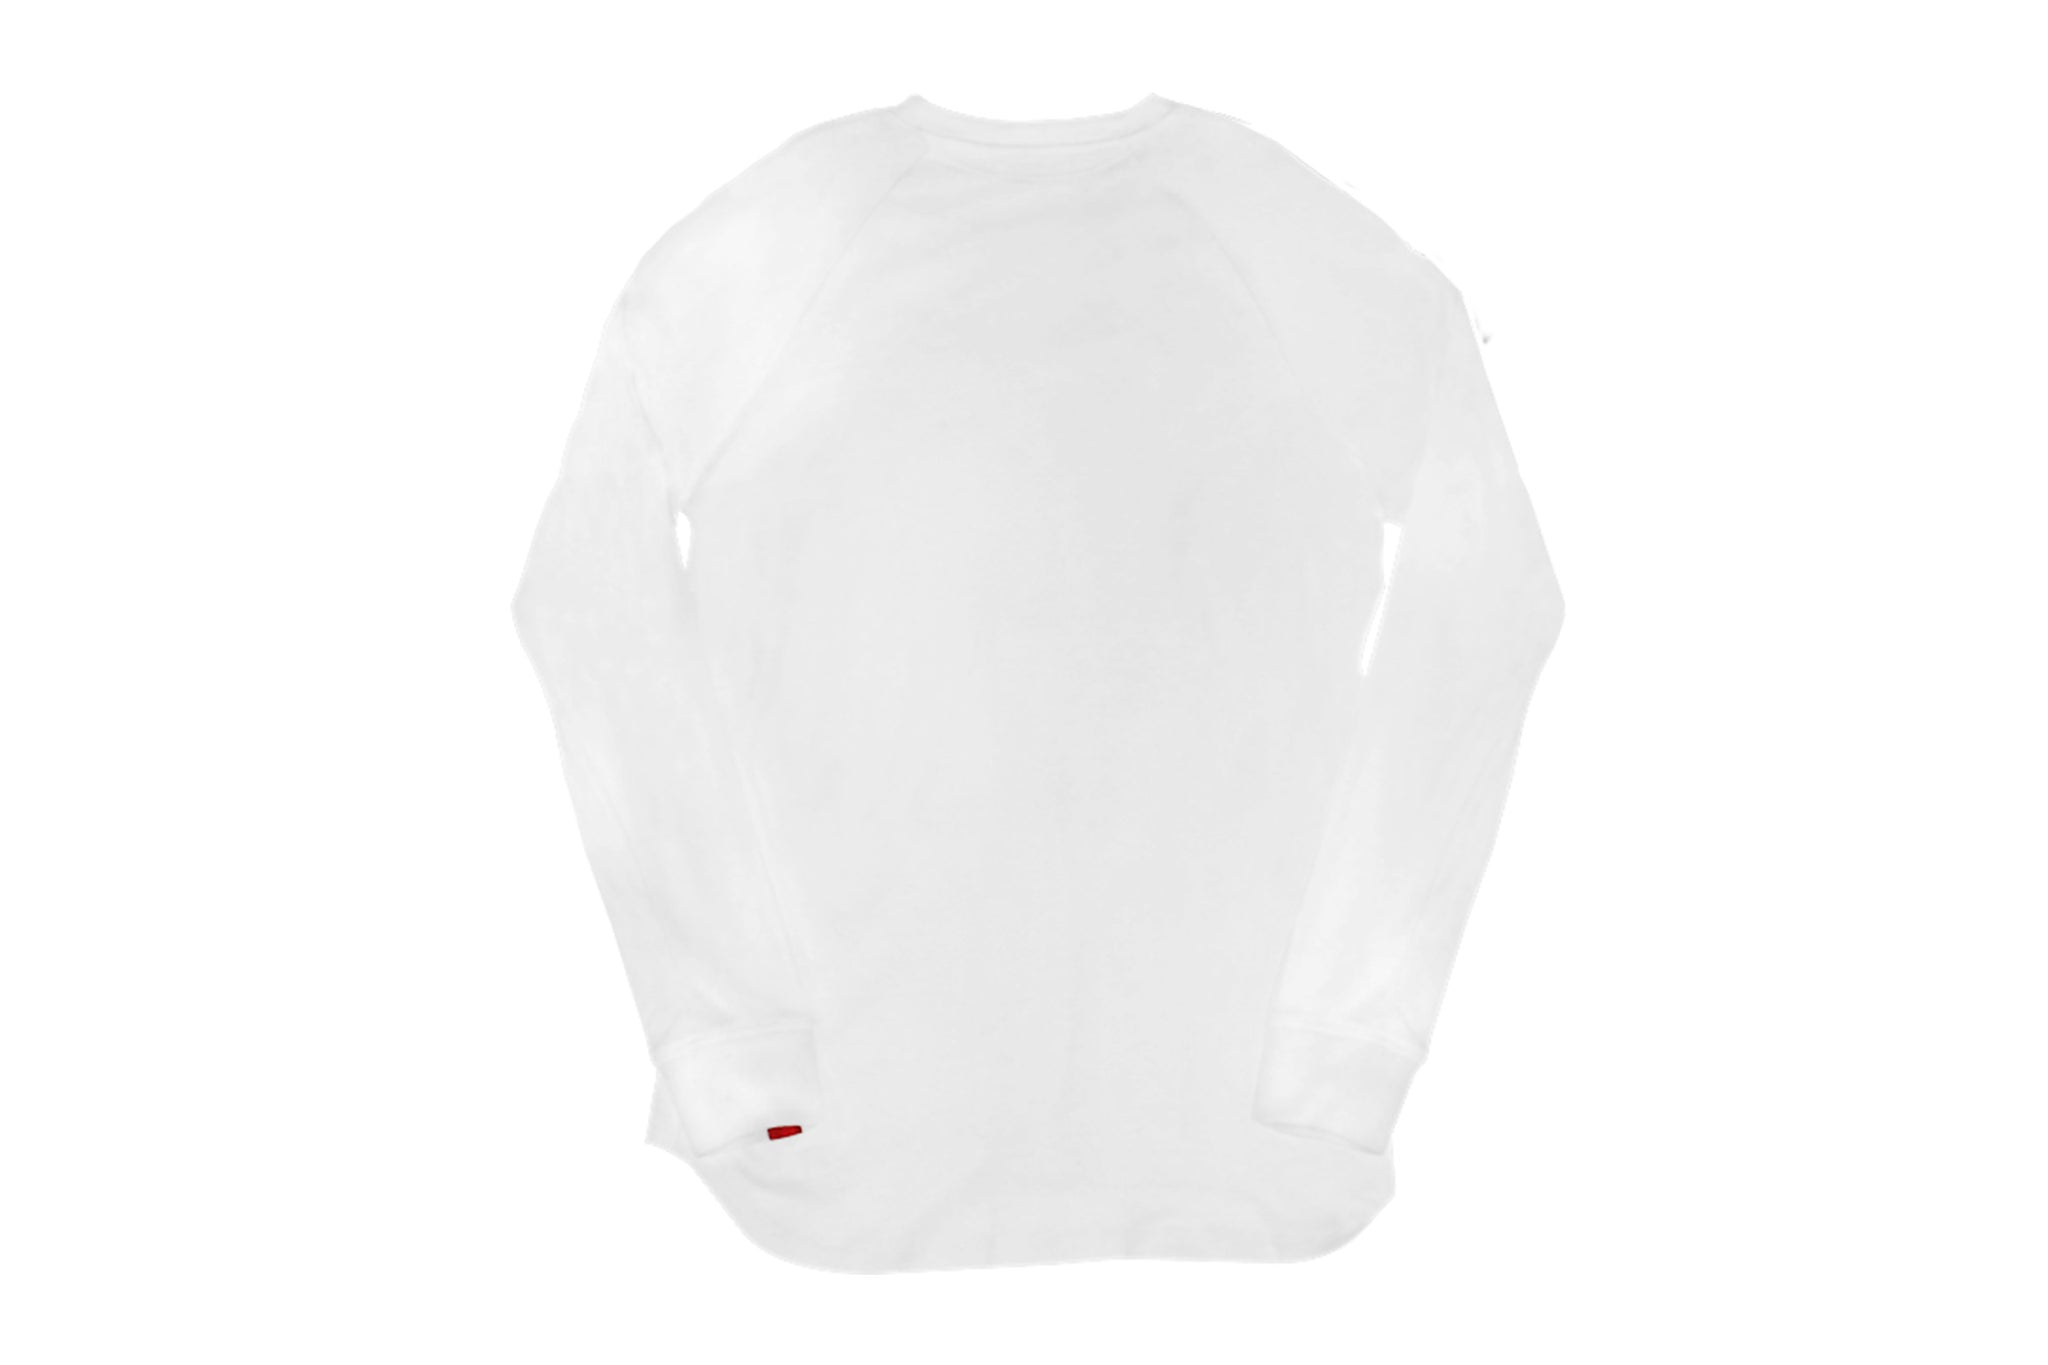 Warren Peace - Remy Long Sleeve T-Shirt in White Back - Designer Streetwear